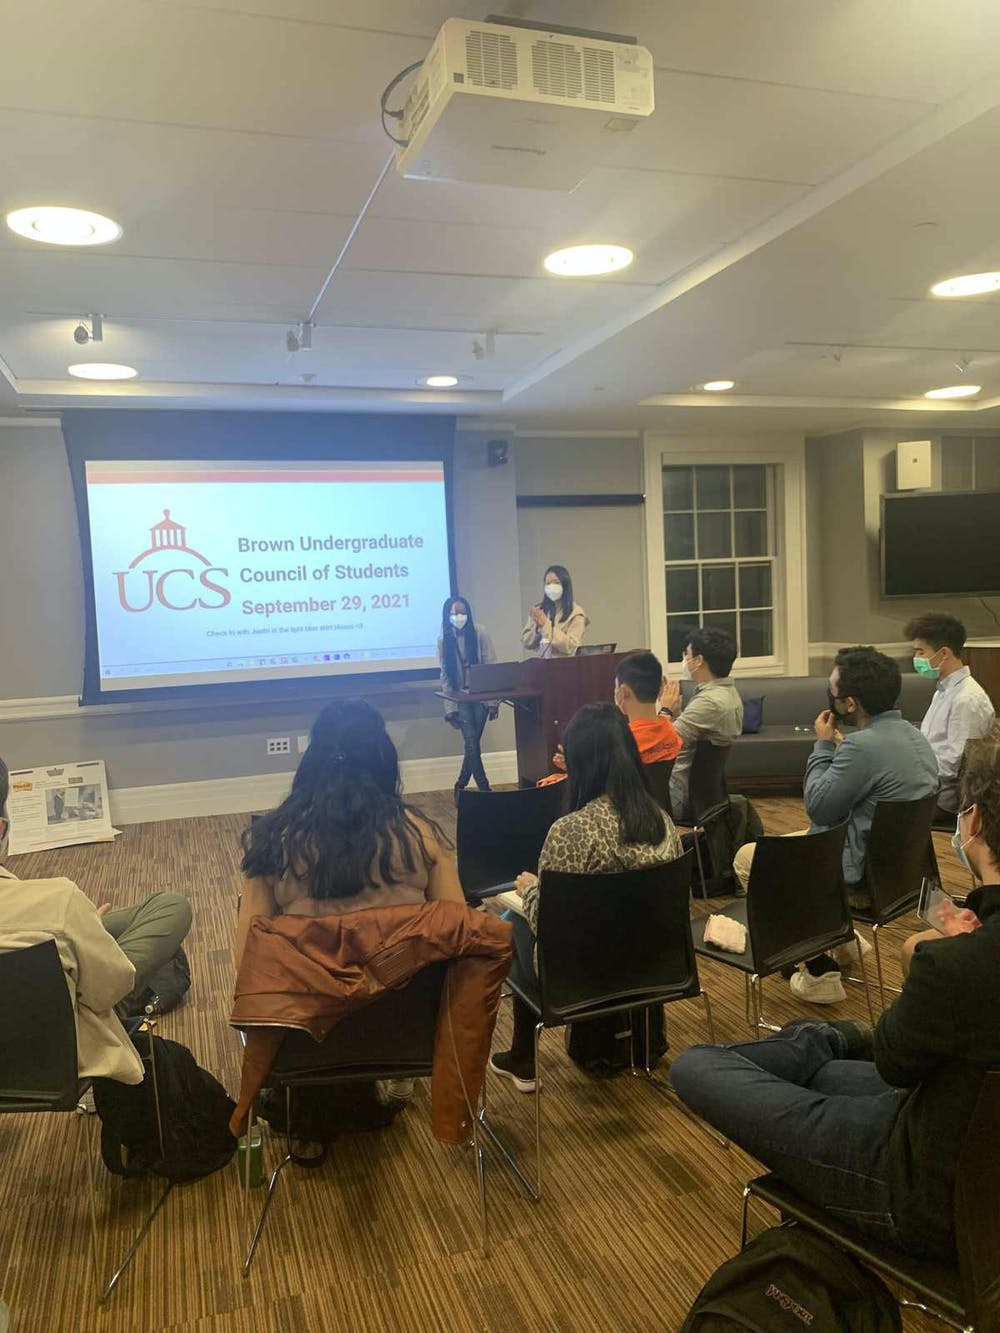 <p>UCS subcommittee initiatives include ensuring that dining halls meet the needs of students with dietary restrictions and promoting the use of composting in dining halls.</p><p><br/><br/></p>